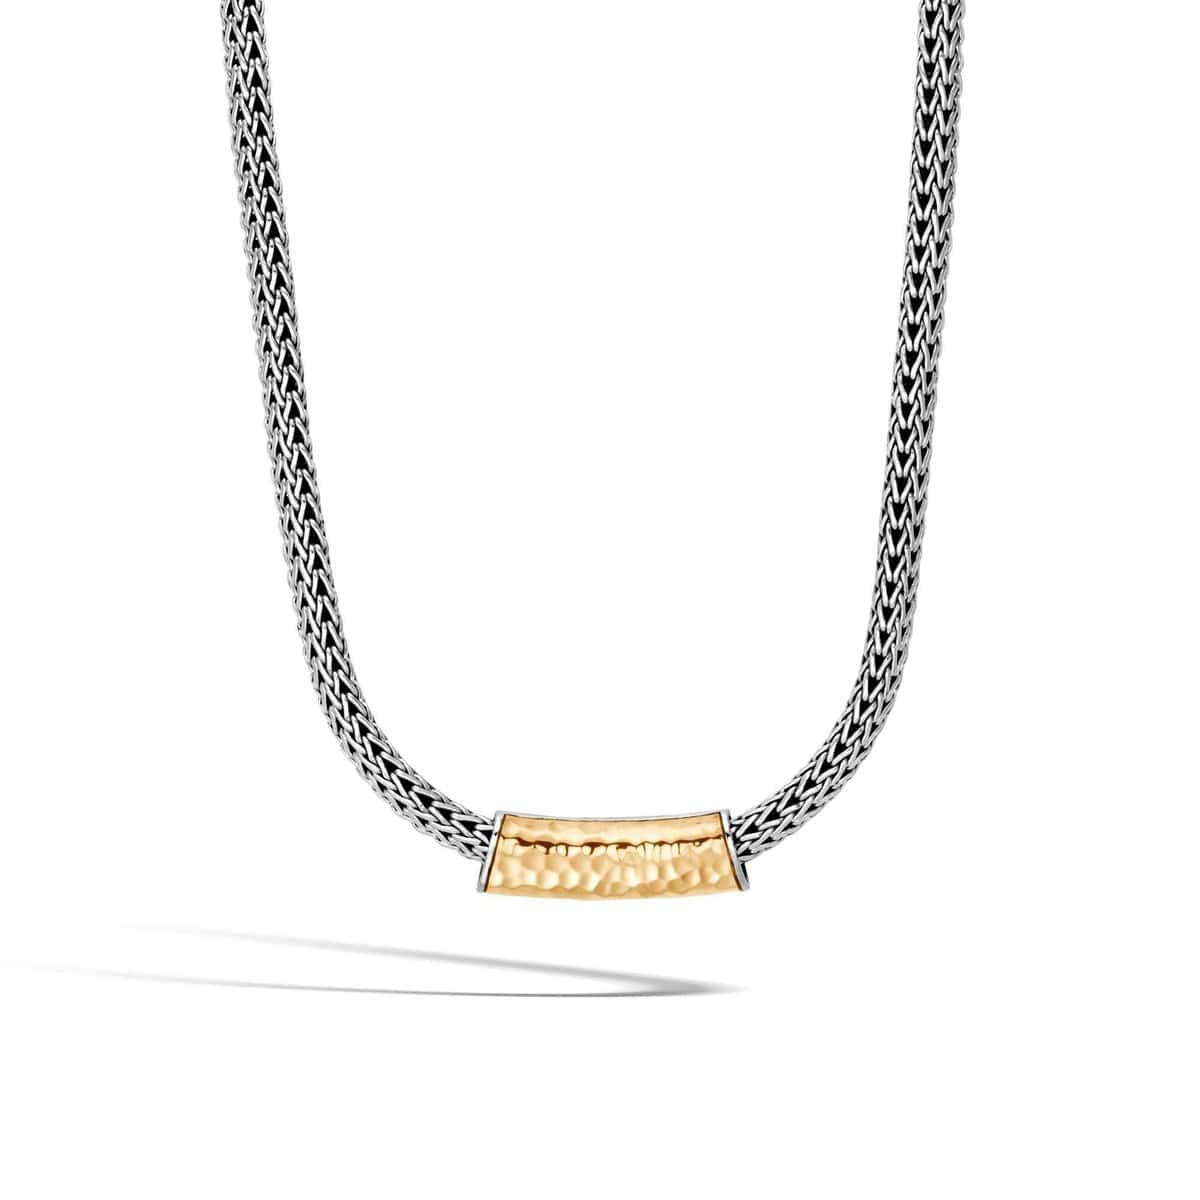 Classic Chain Hammered 18k Gold & Silver Pendant - HZ95152-John Hardy-Renee Taylor Gallery